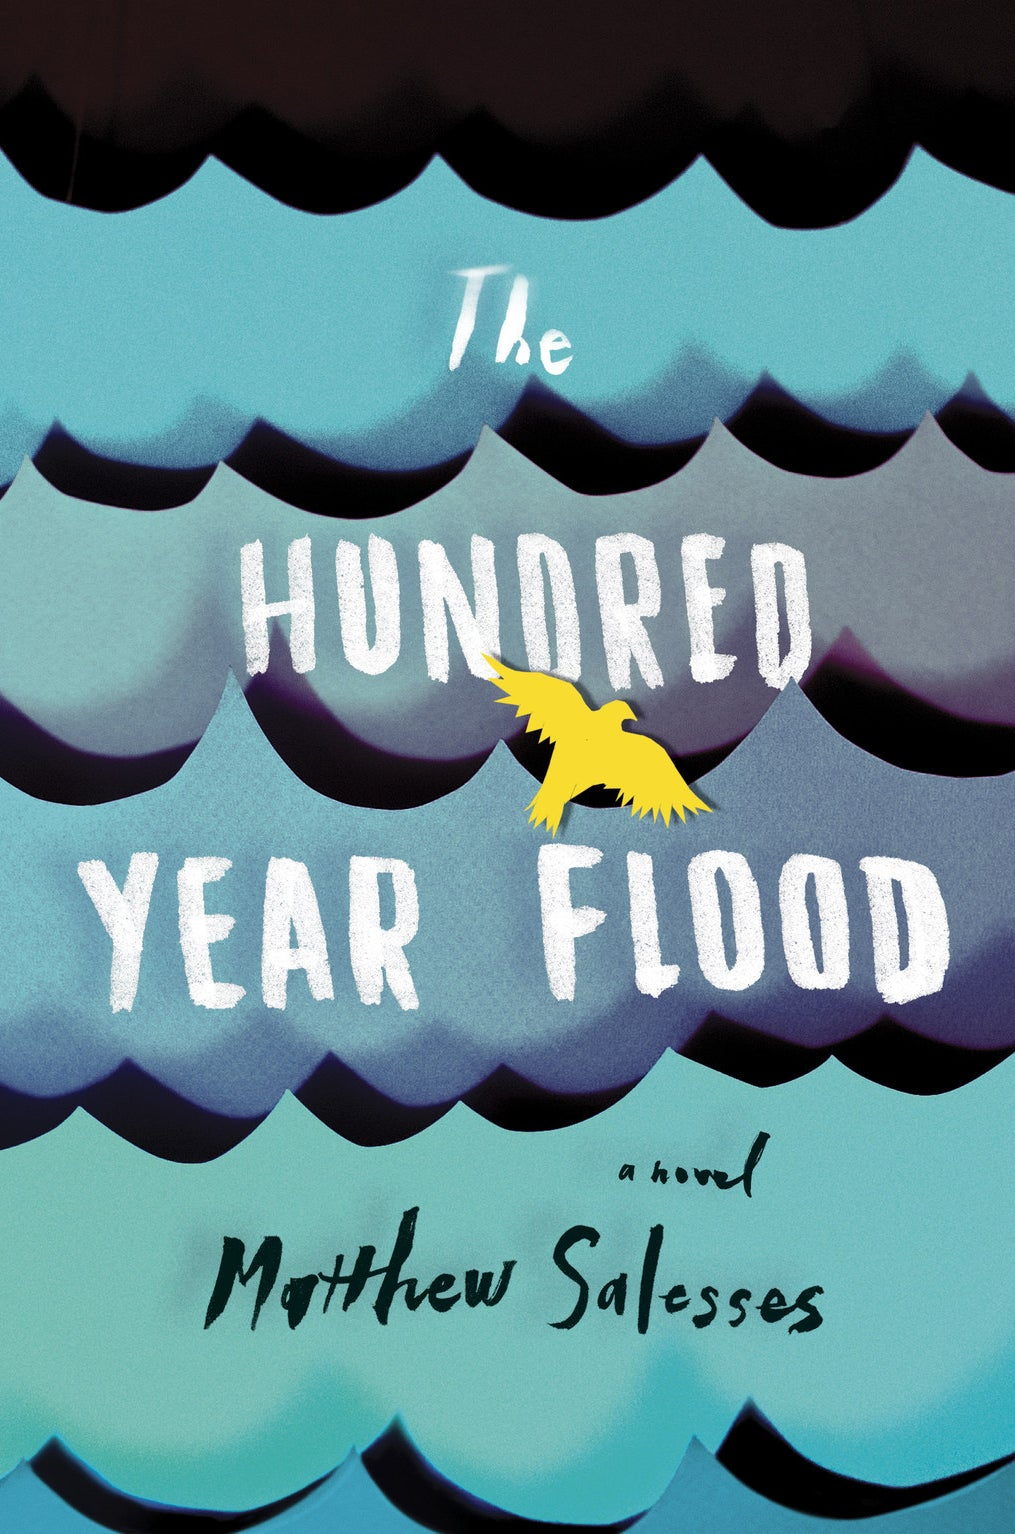 The Hundred Year Flood by Matthew Salesses